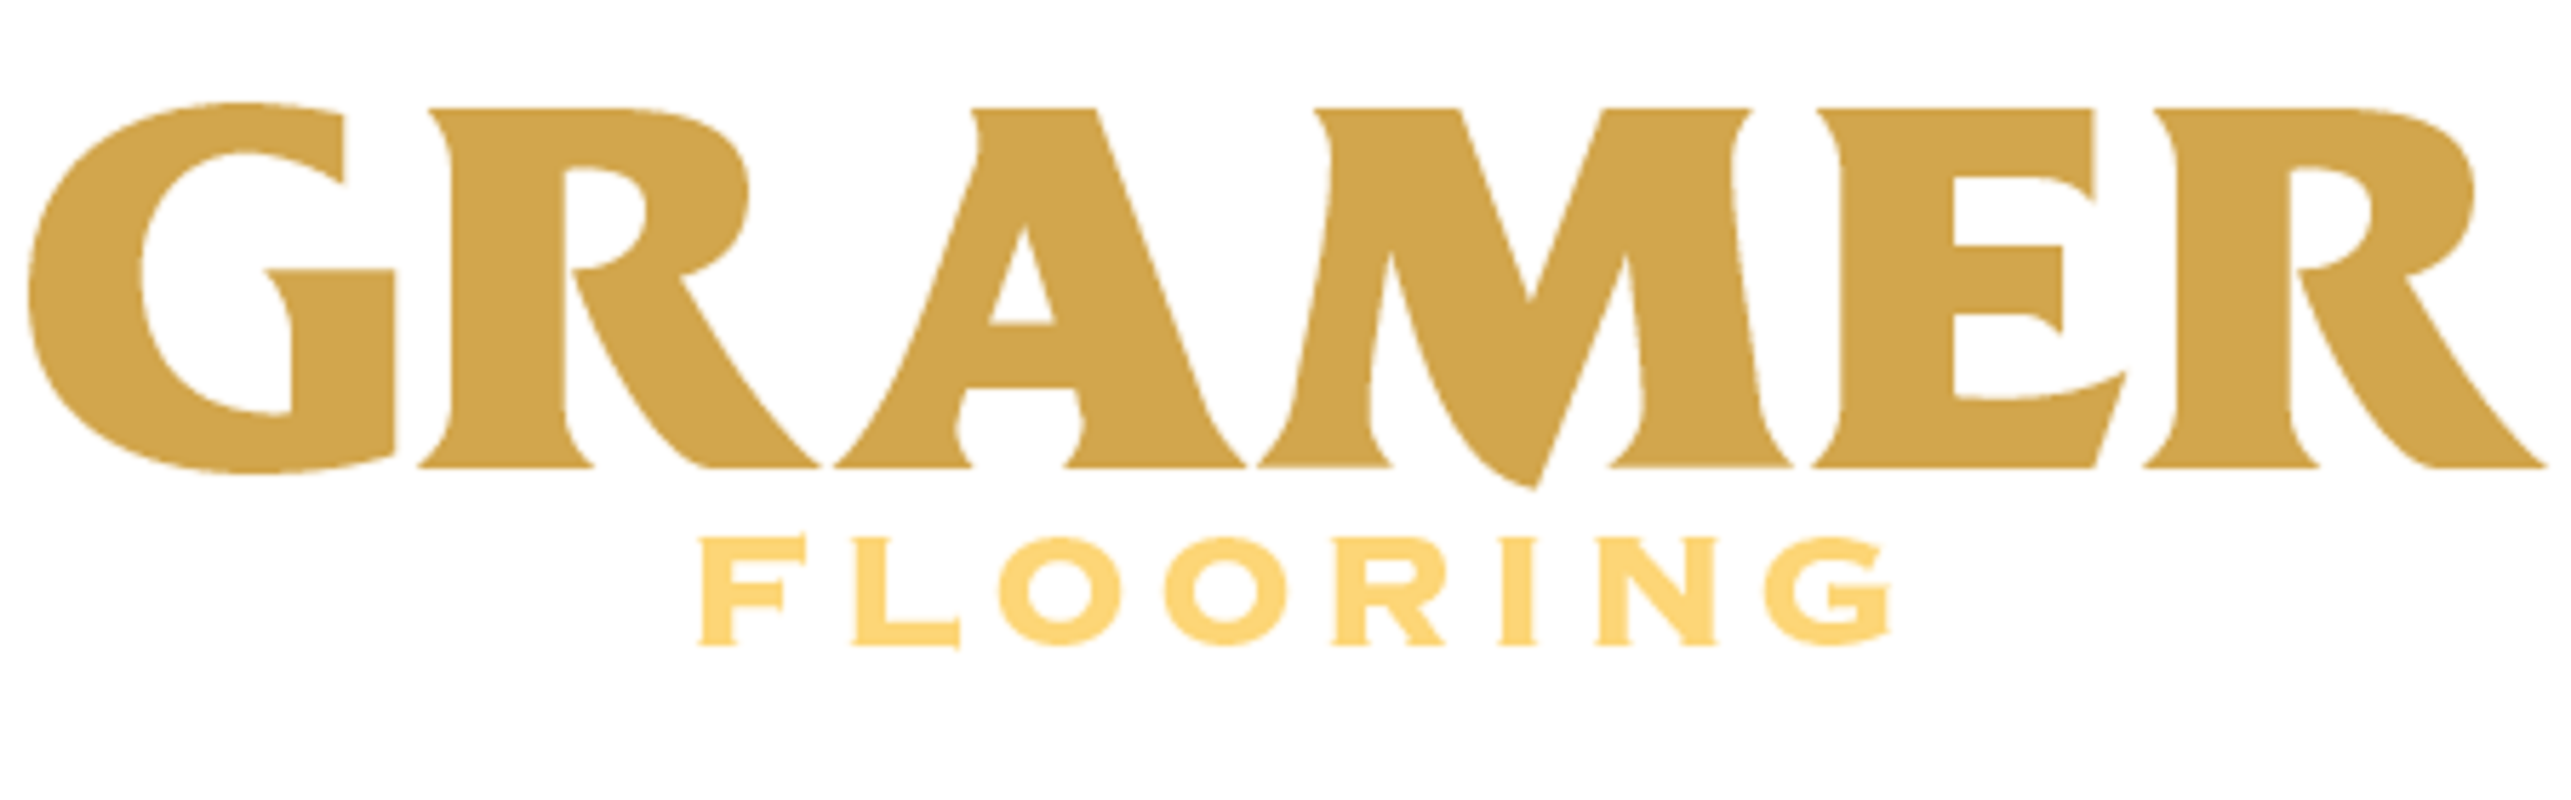 Hardwood Floor Installation Refinishing and Repair Cincinnati